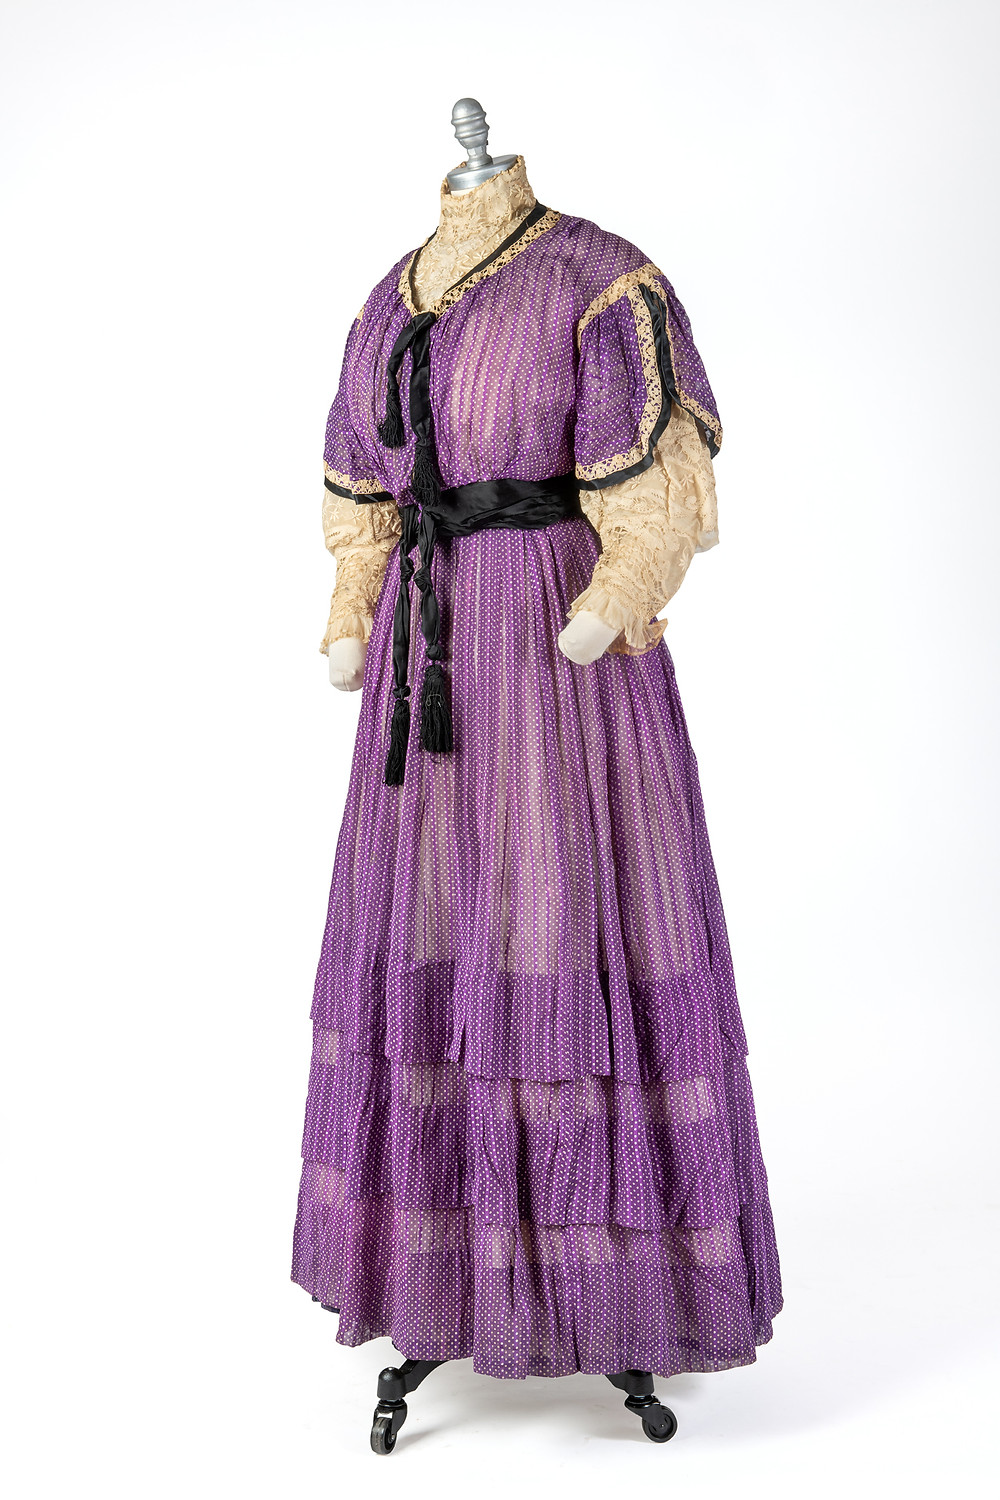 This dress, donated to the Historical Association in 1984, would prove to have a fascinating history behind it.